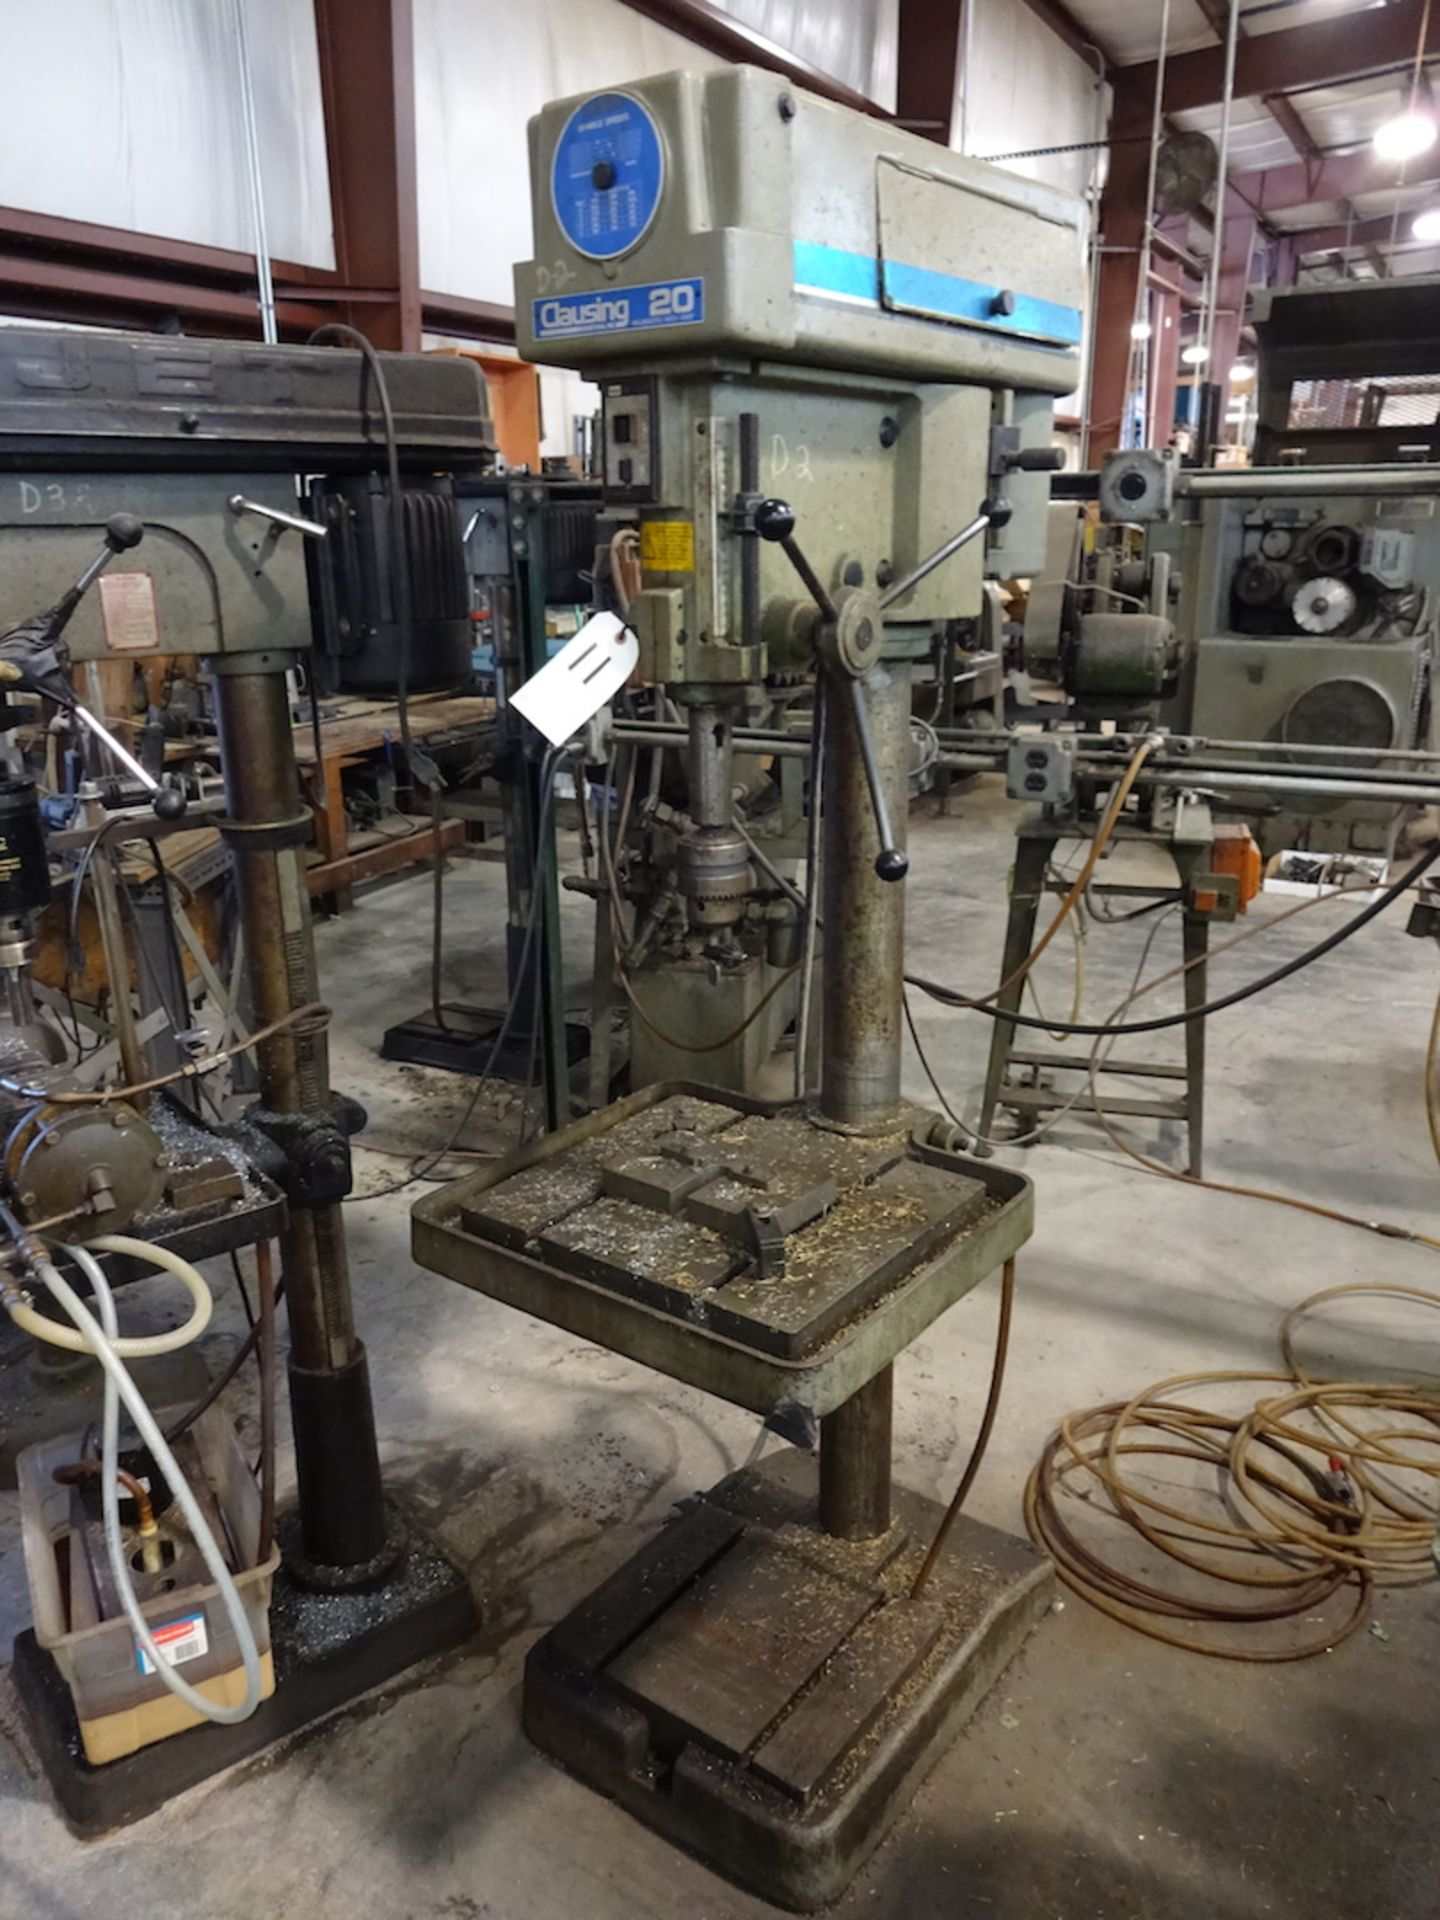 Lot 11 - Clausing Industrial 20 in. Model 2234 Variable Speed Floor Type Drill Press, S/N 110379, 1-1/2 HP,